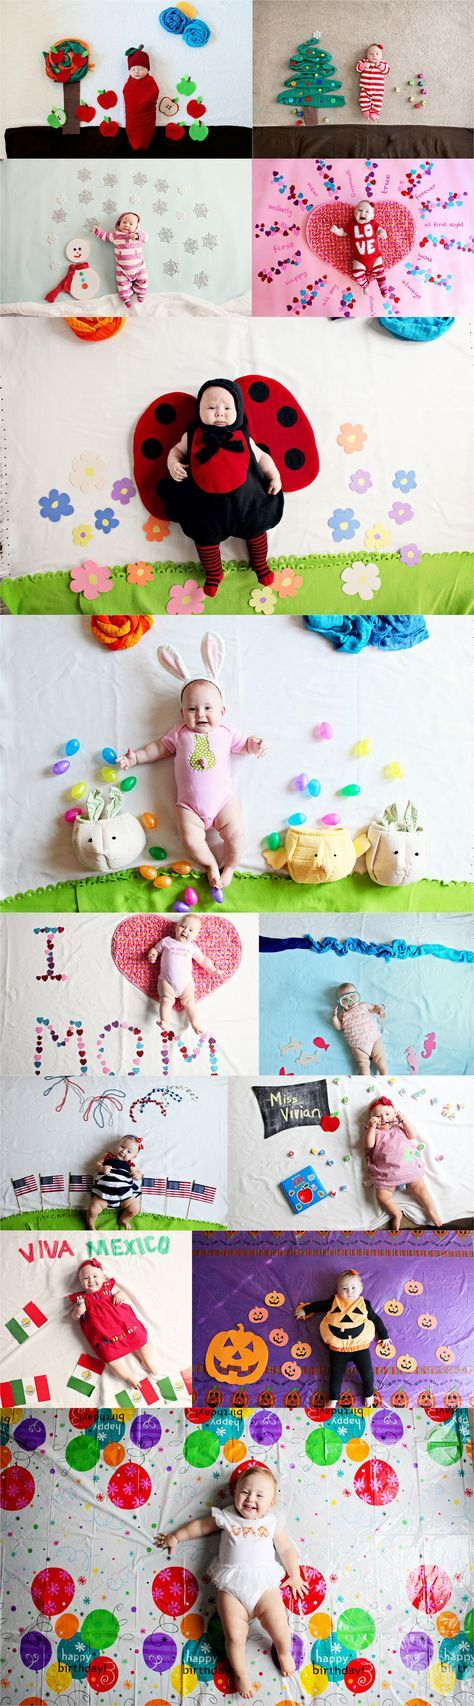 Baby Photo Calendar Ideas : Ideas about month baby on pinterest